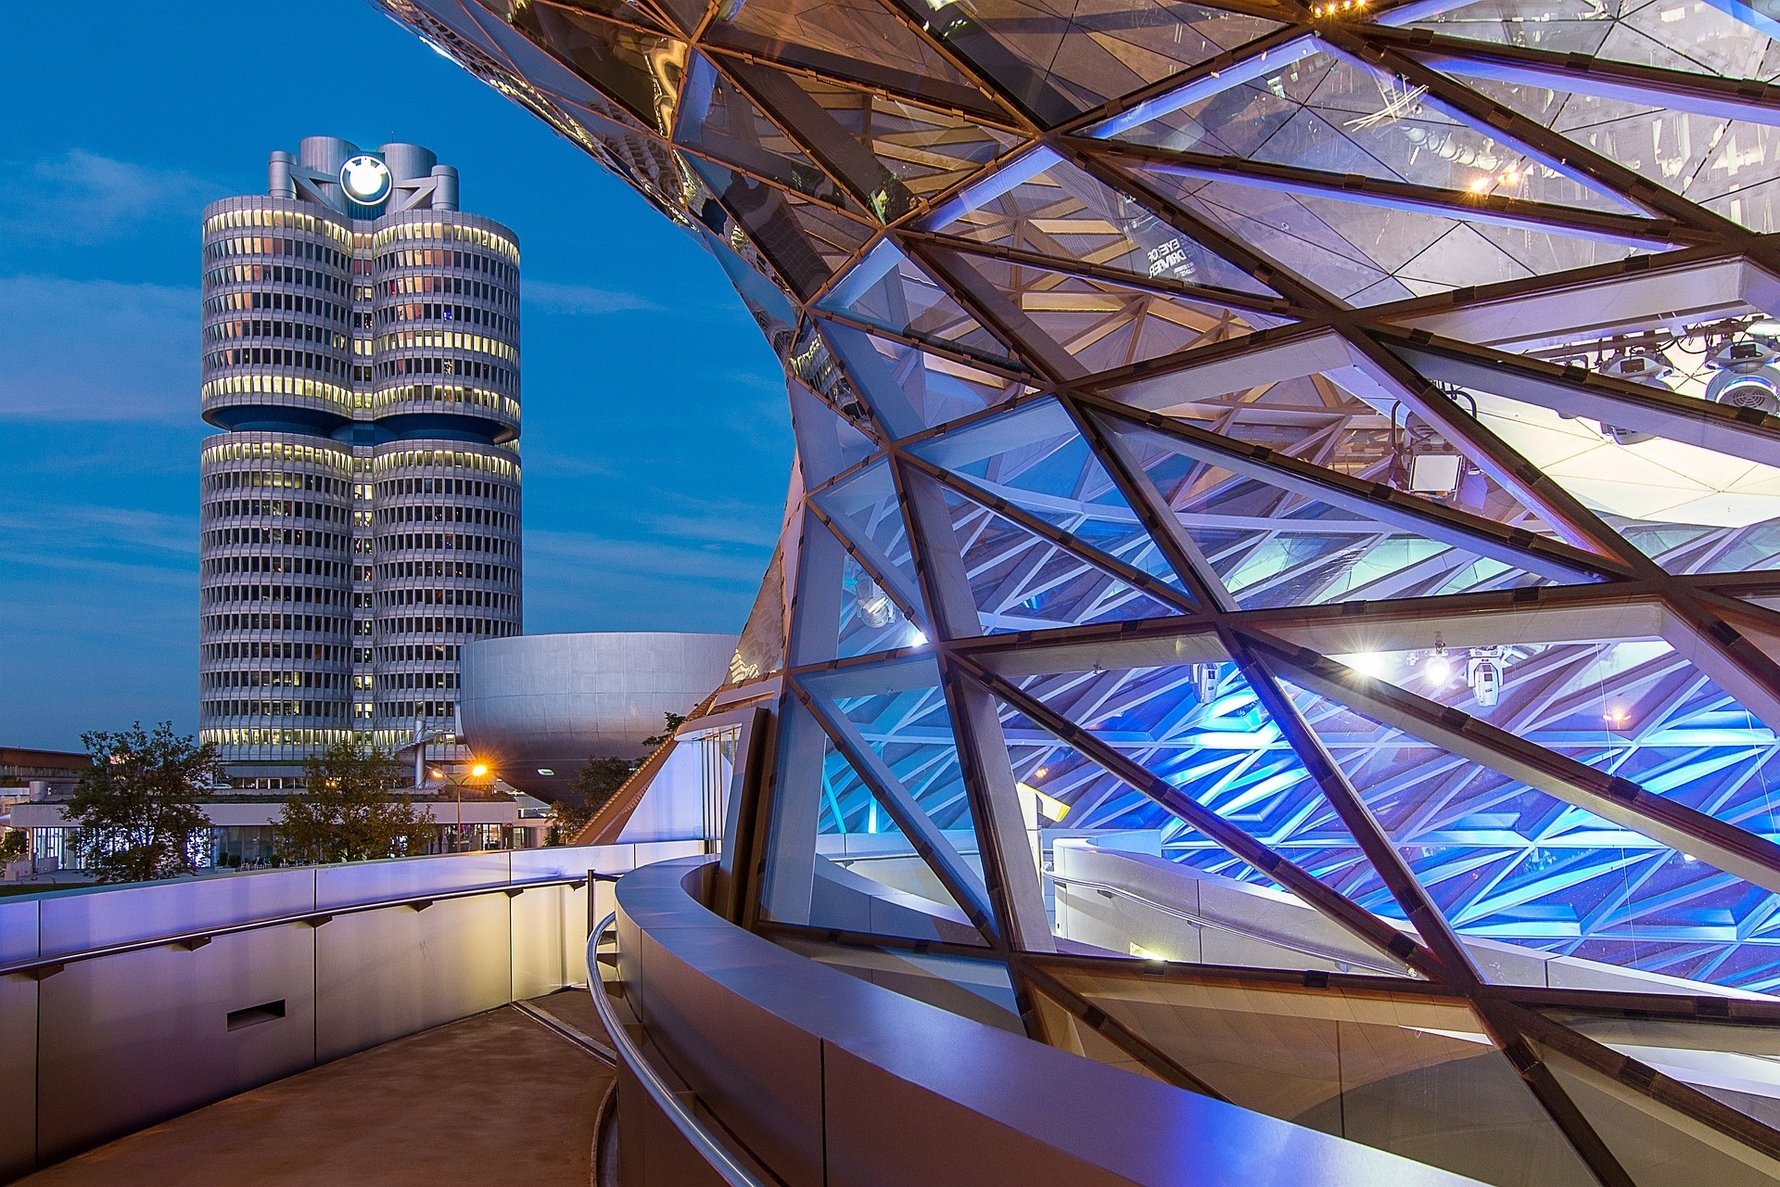 Top 5 Buildings to See in Munich